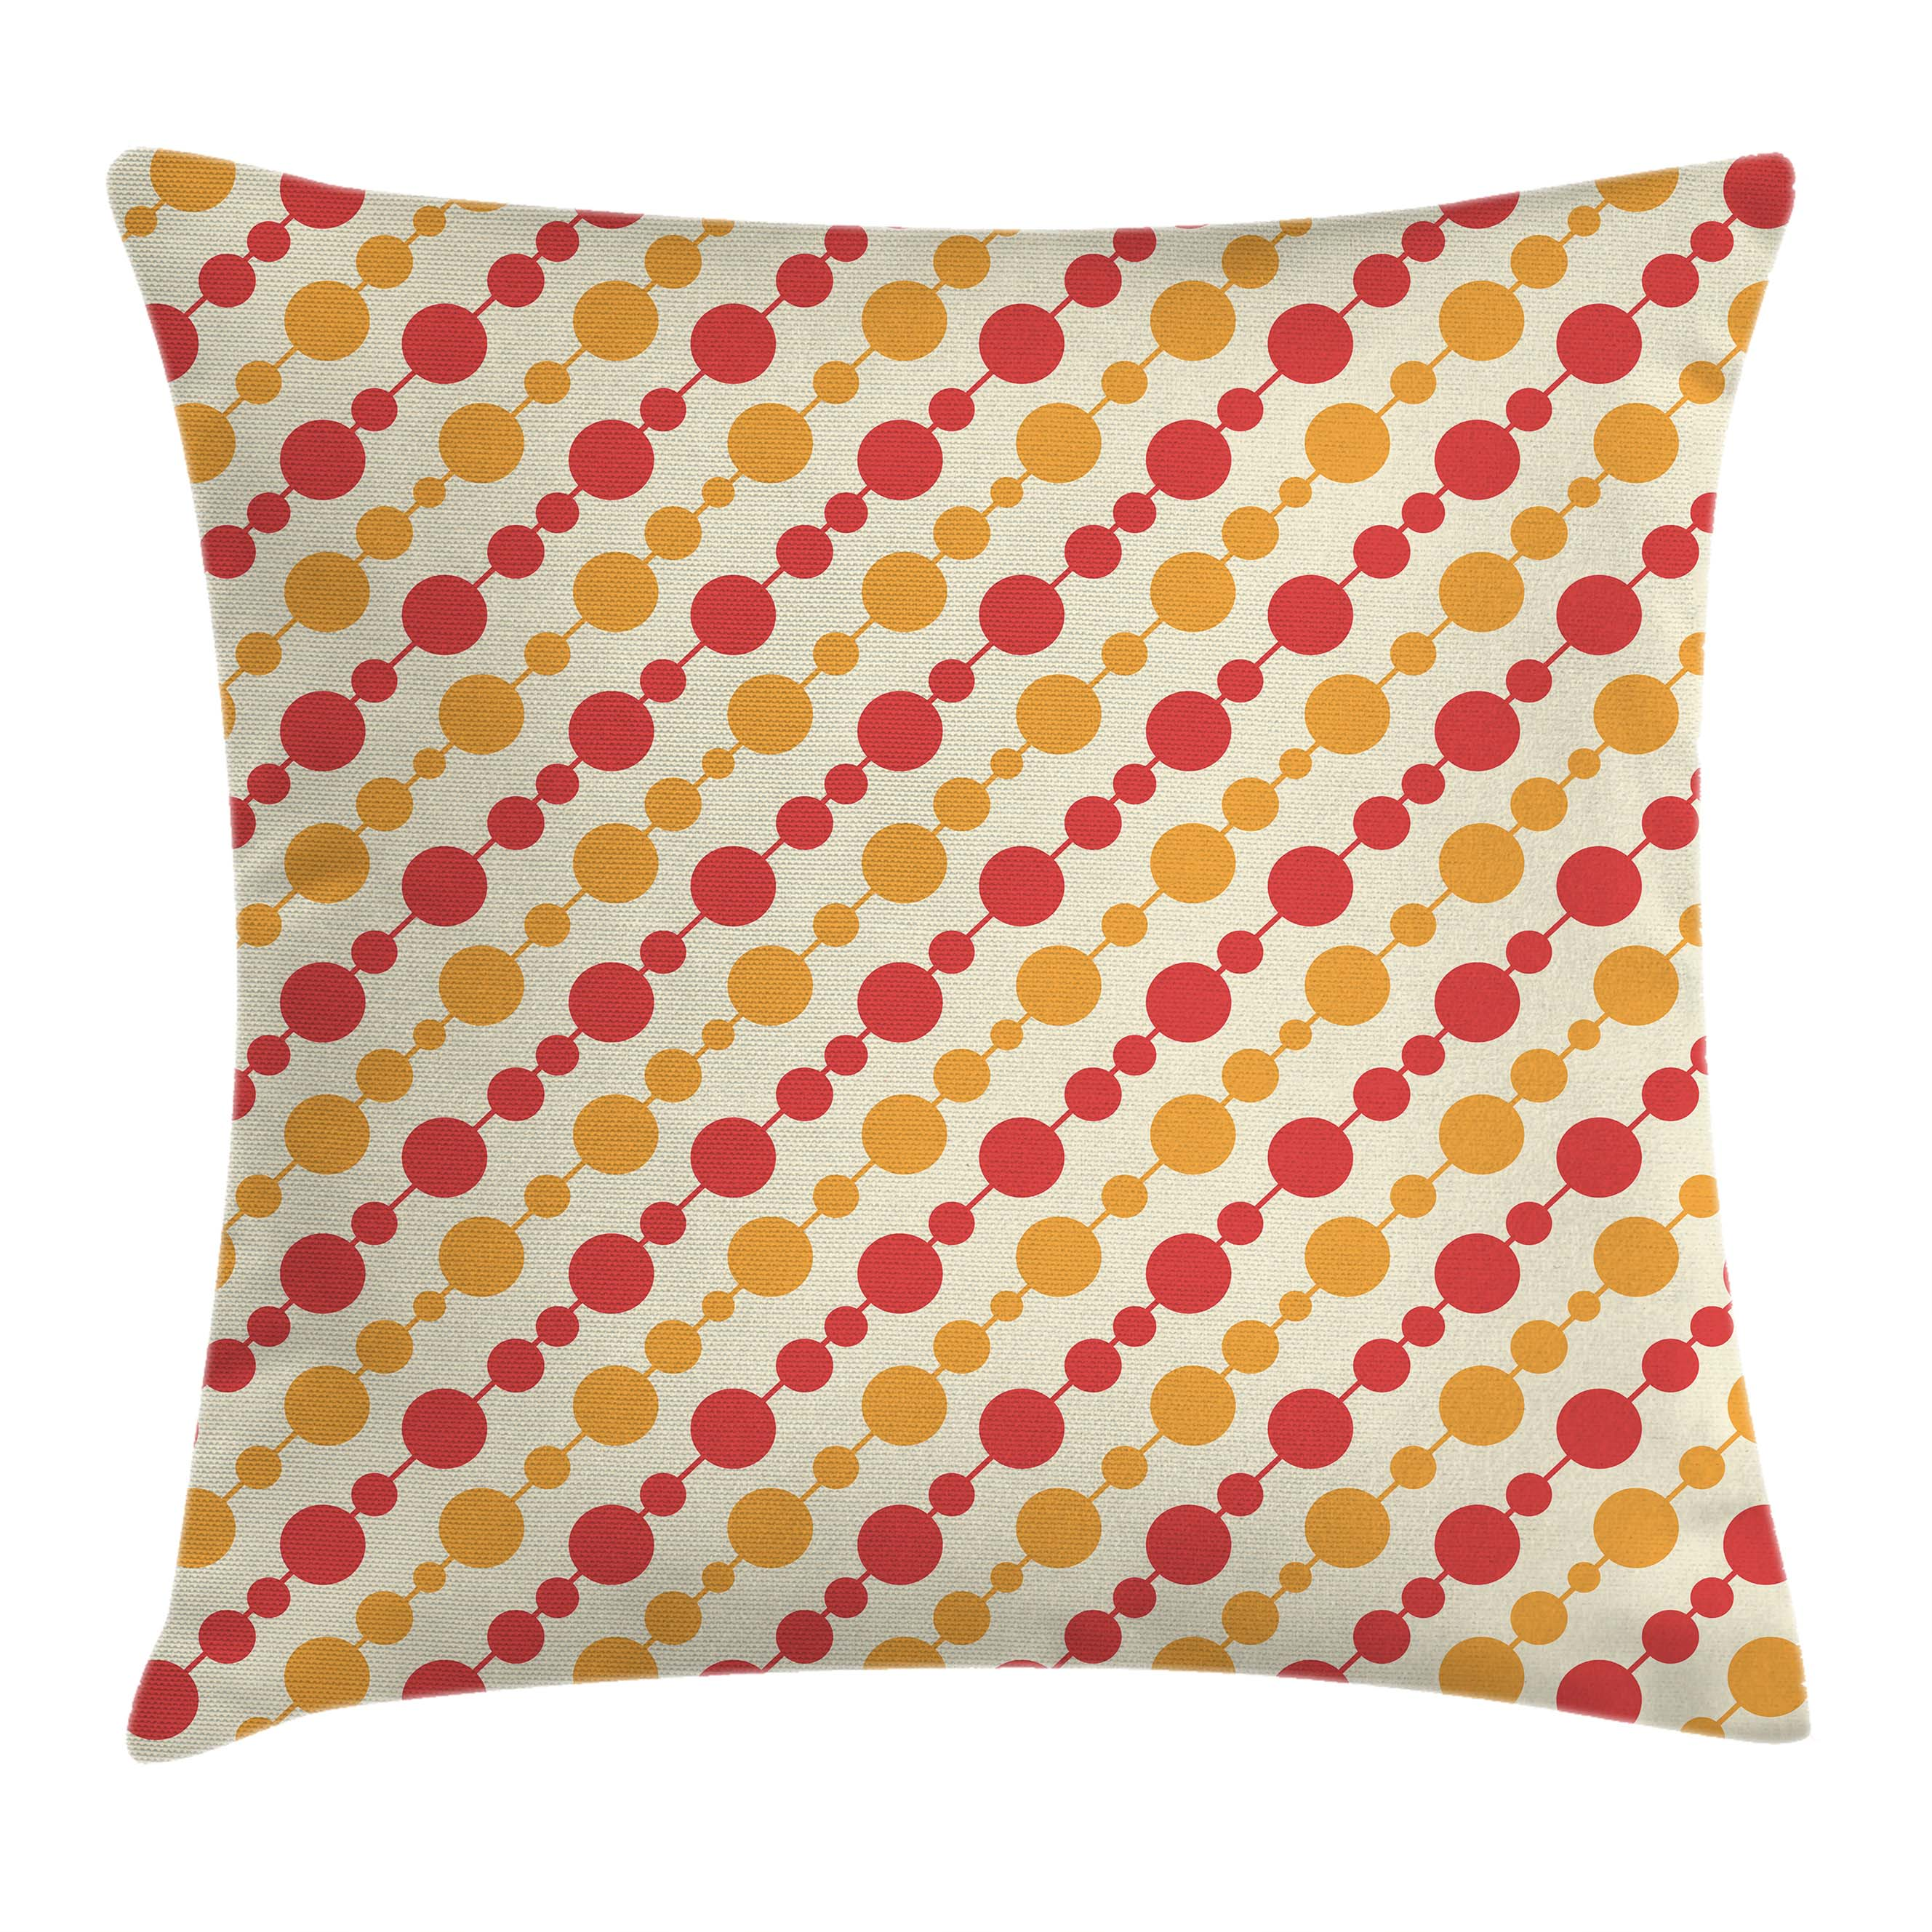 Kids Throw Pillow Cushion Cover, Diagonal Chain Pattern with Big and Small Dots on Lines in Shabby Colors, Decorative Square Accent Pillow Case, 16 X 16 Inches, Scarlet Marigold Cream, by Ambesonne